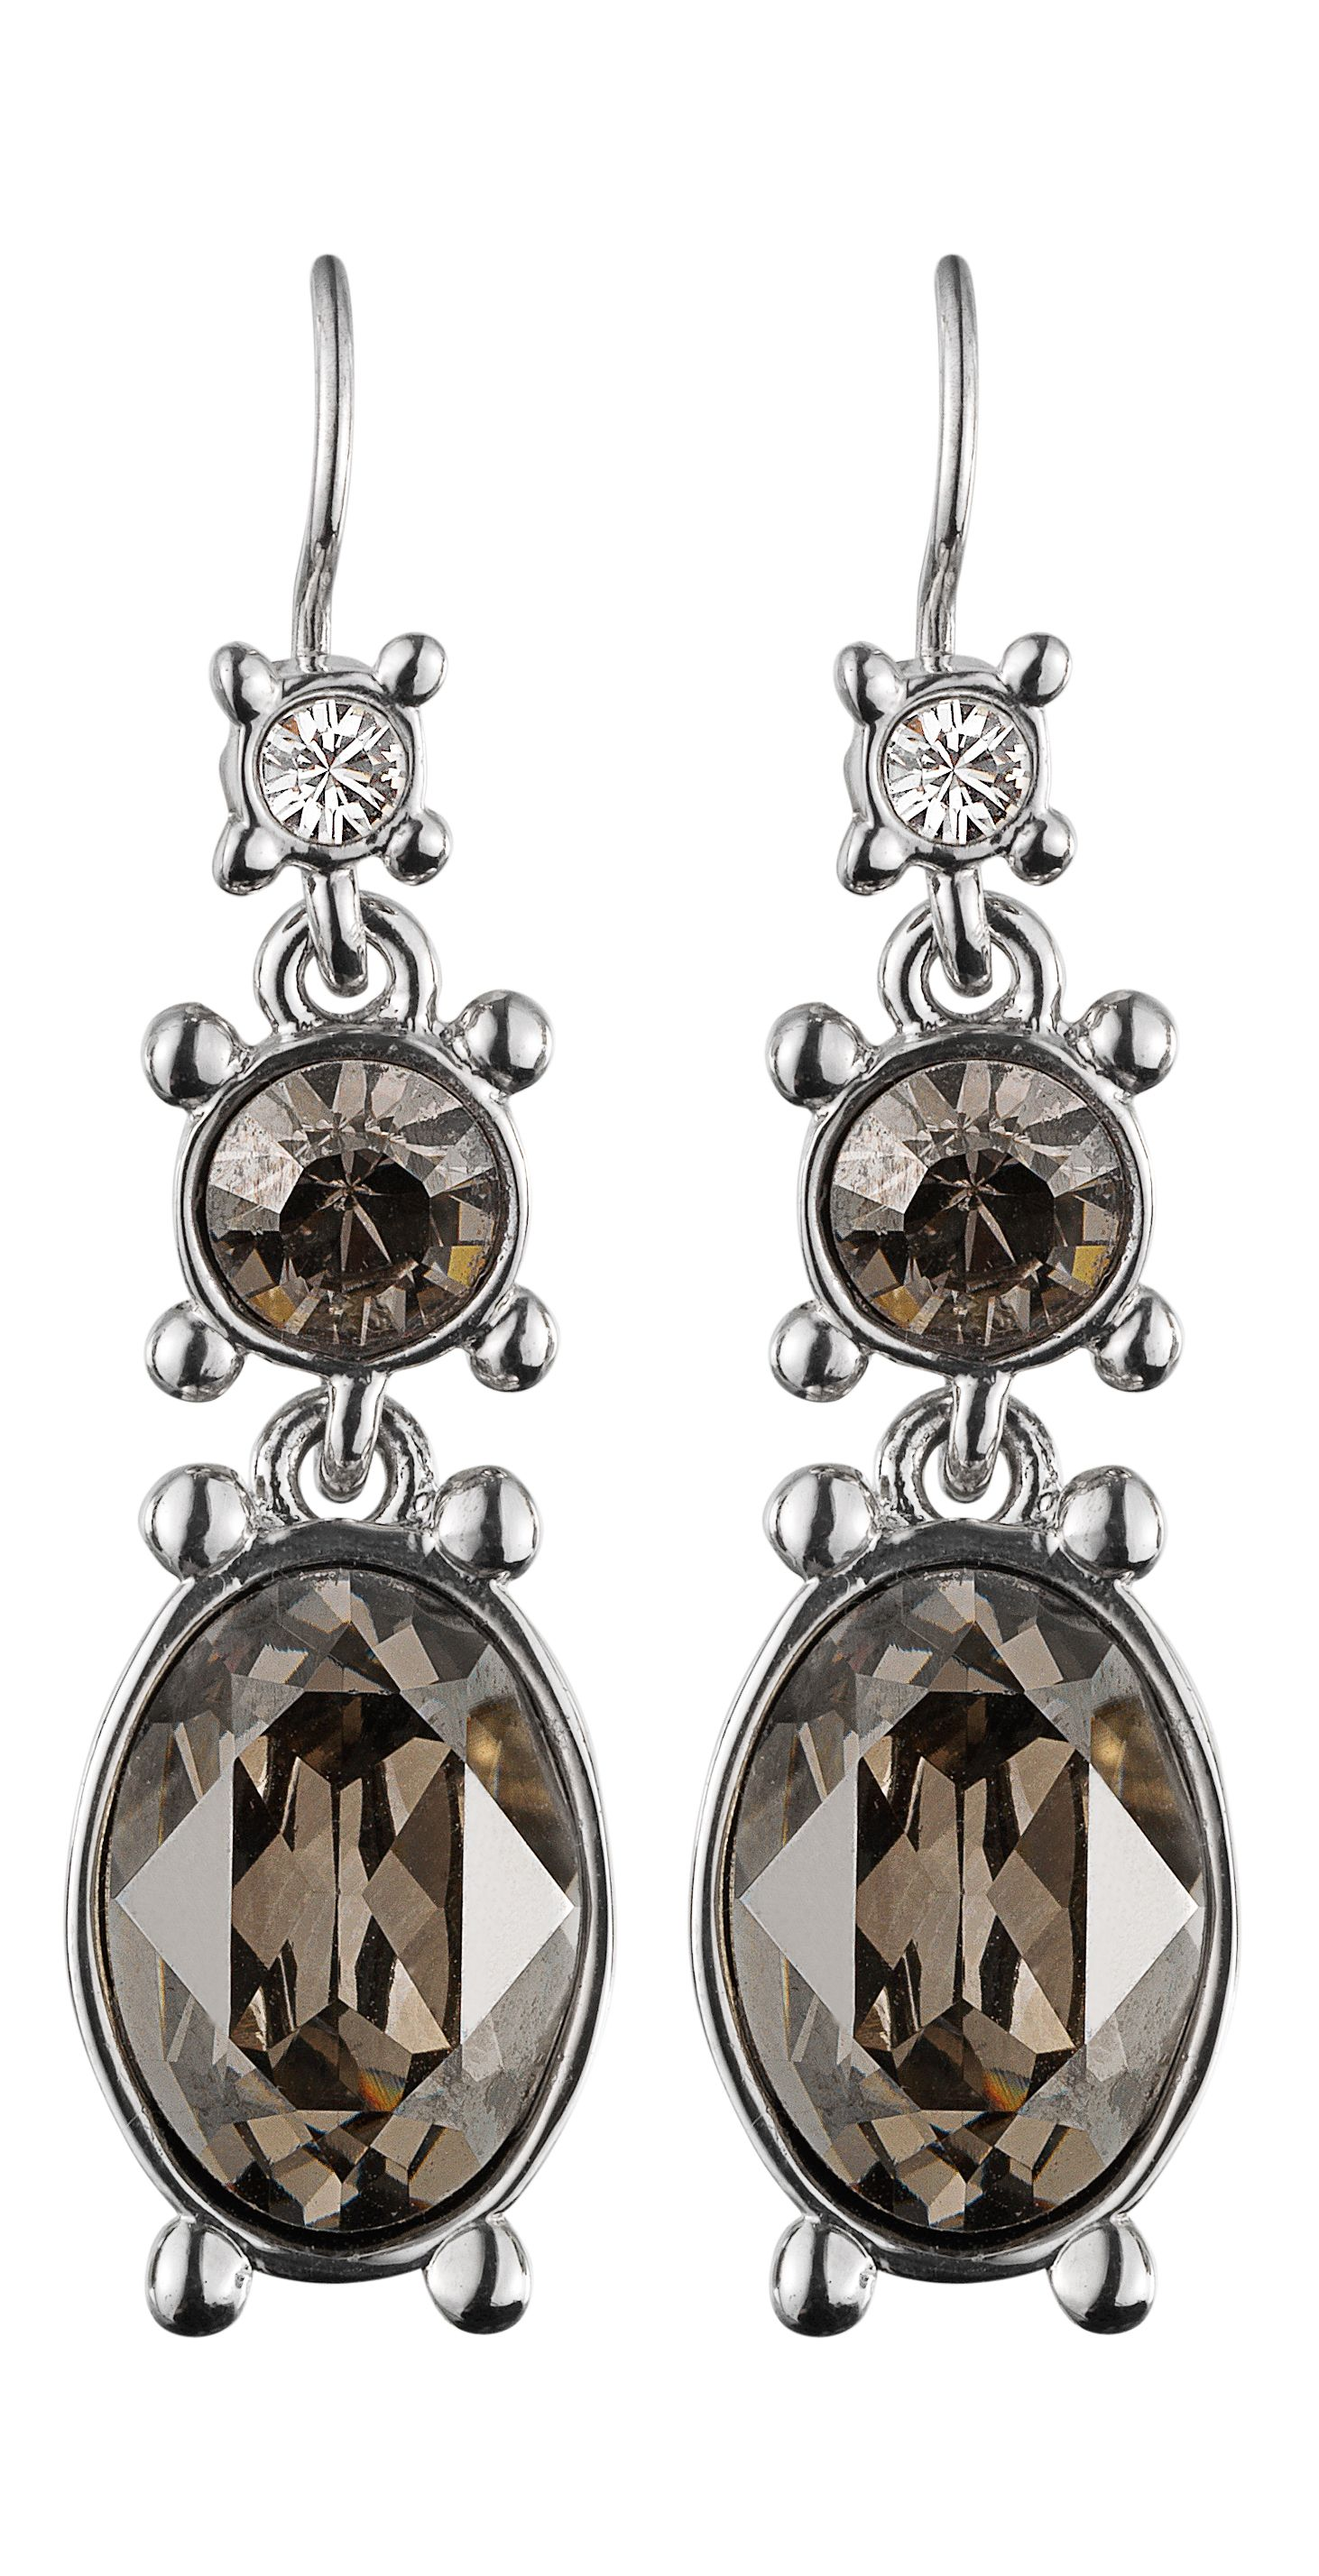 Raine Shiny Silver Satin Earrings